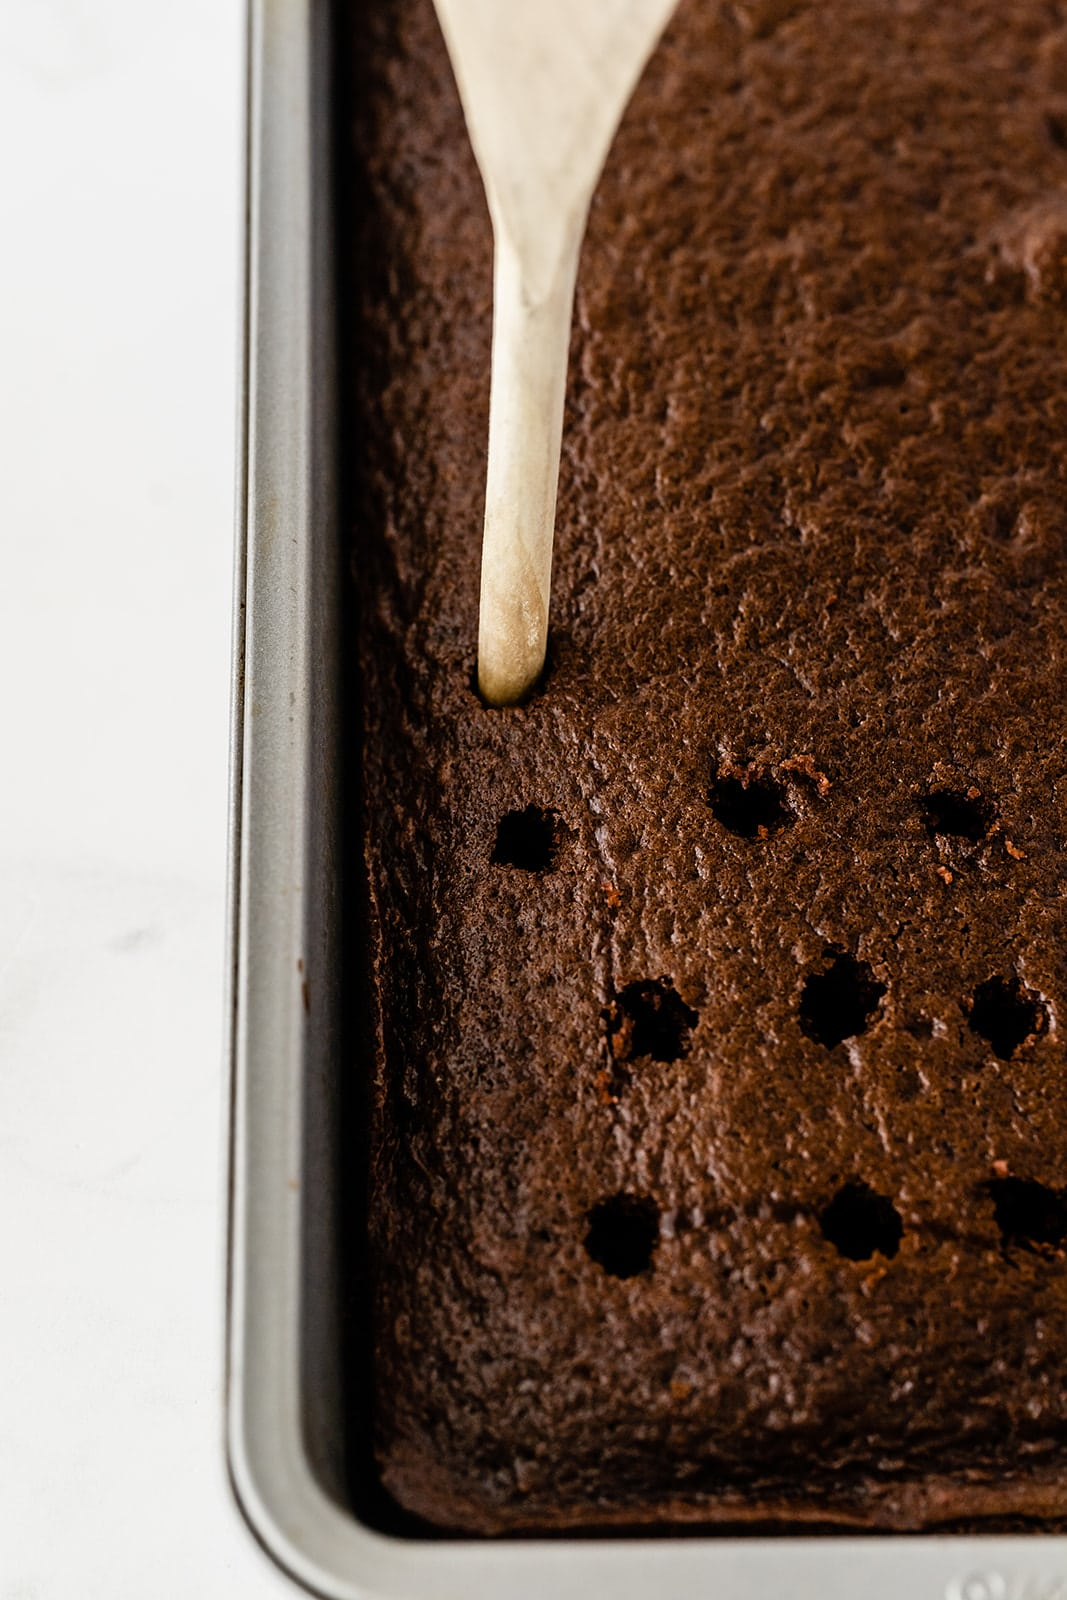 a wooden handle of a spoon being used to poke holes in a chocolate cake